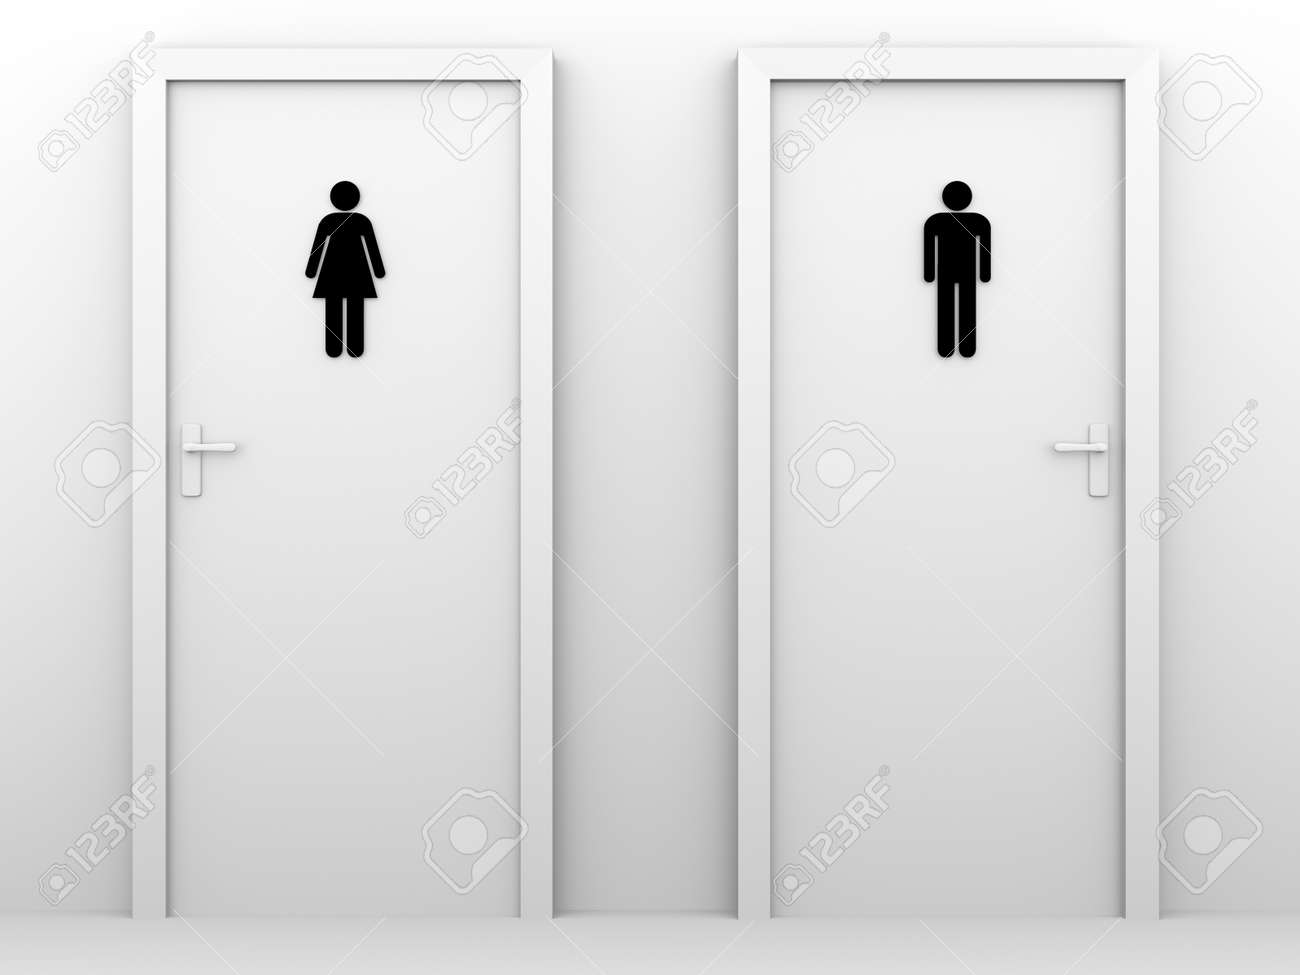 toilet doors for male and female genders Stock Photo - 12700751 & Toilet Doors For Male And Female Genders Stock Photo Picture And ... pezcame.com